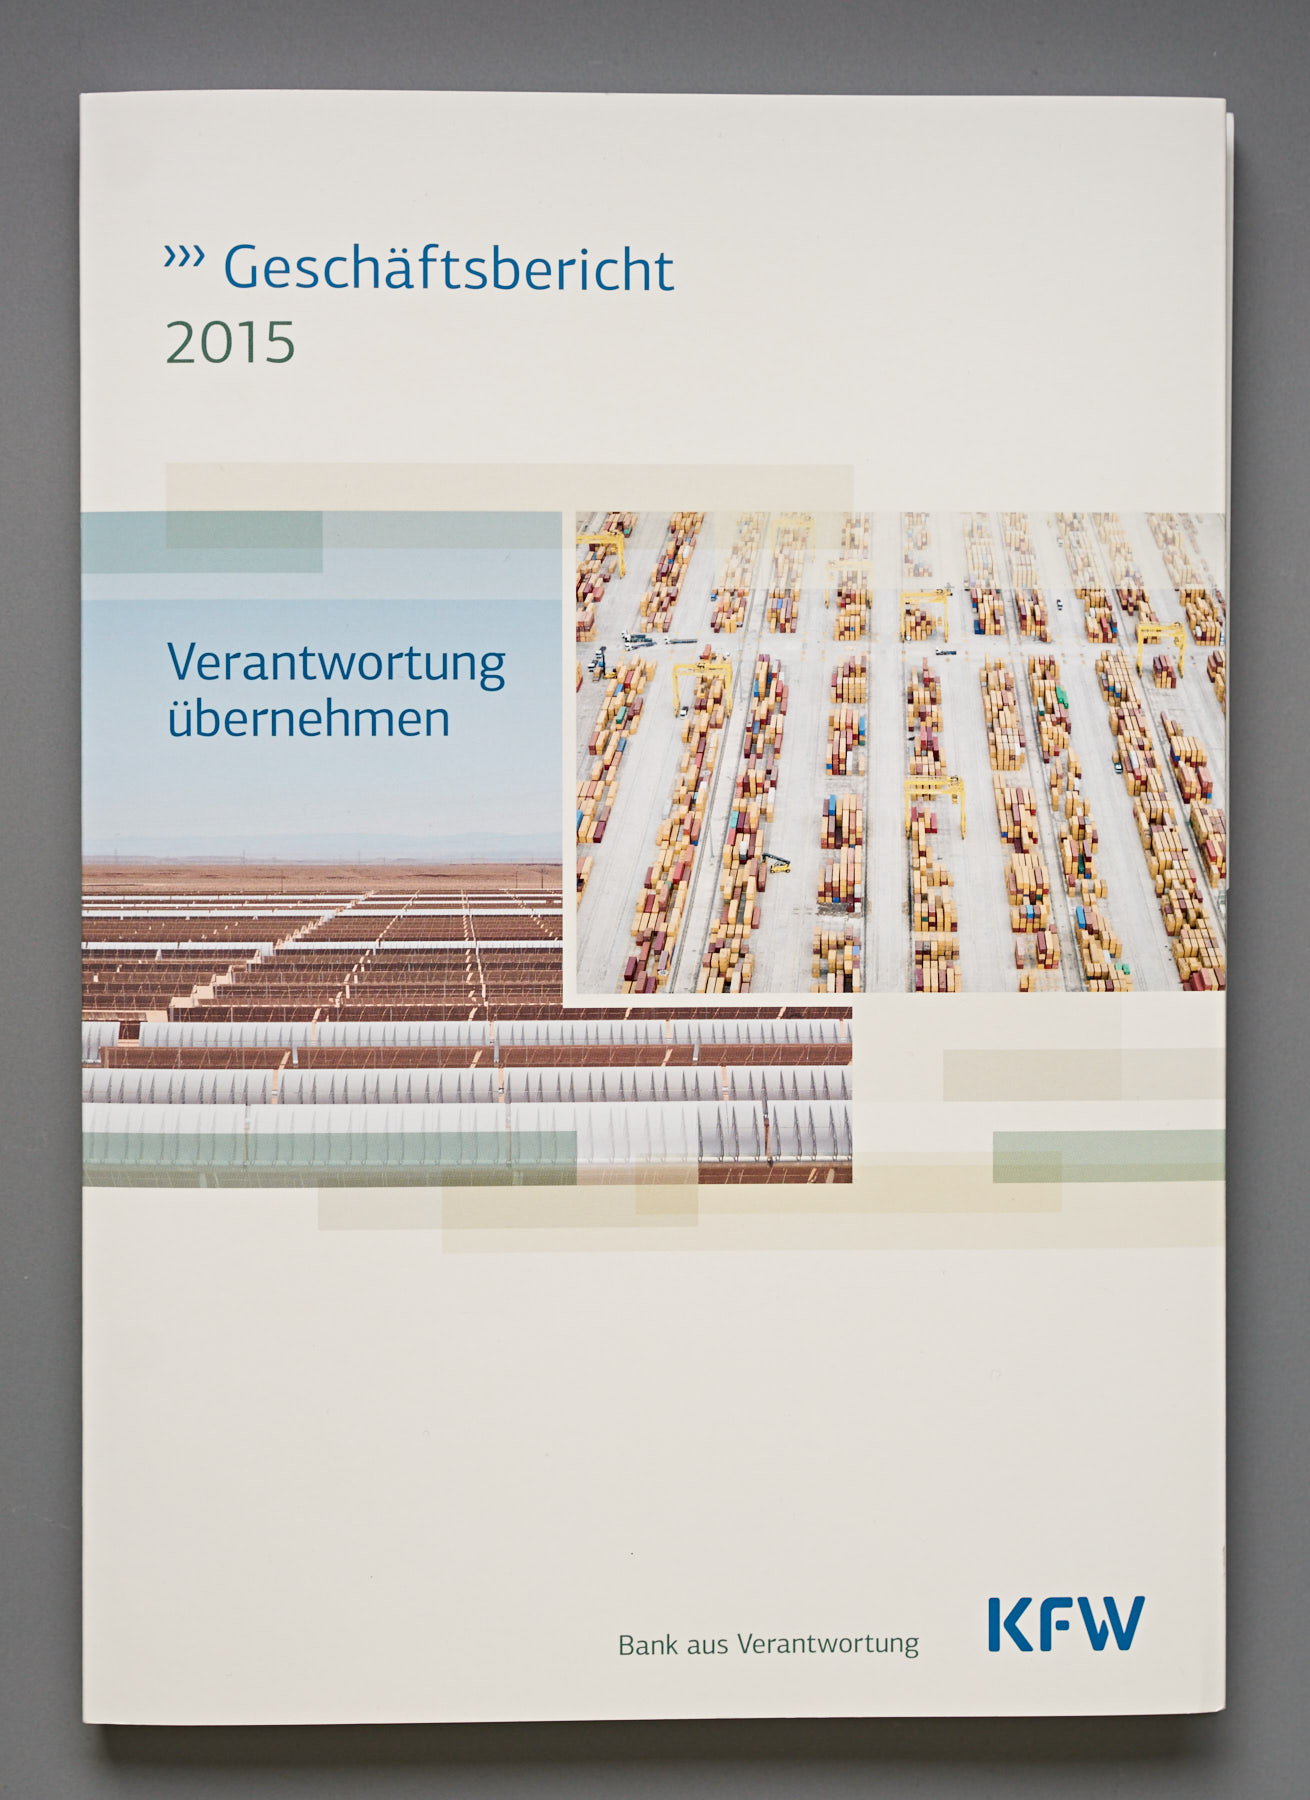 ruediger_nehmzow_KfW_annual_report_15_01